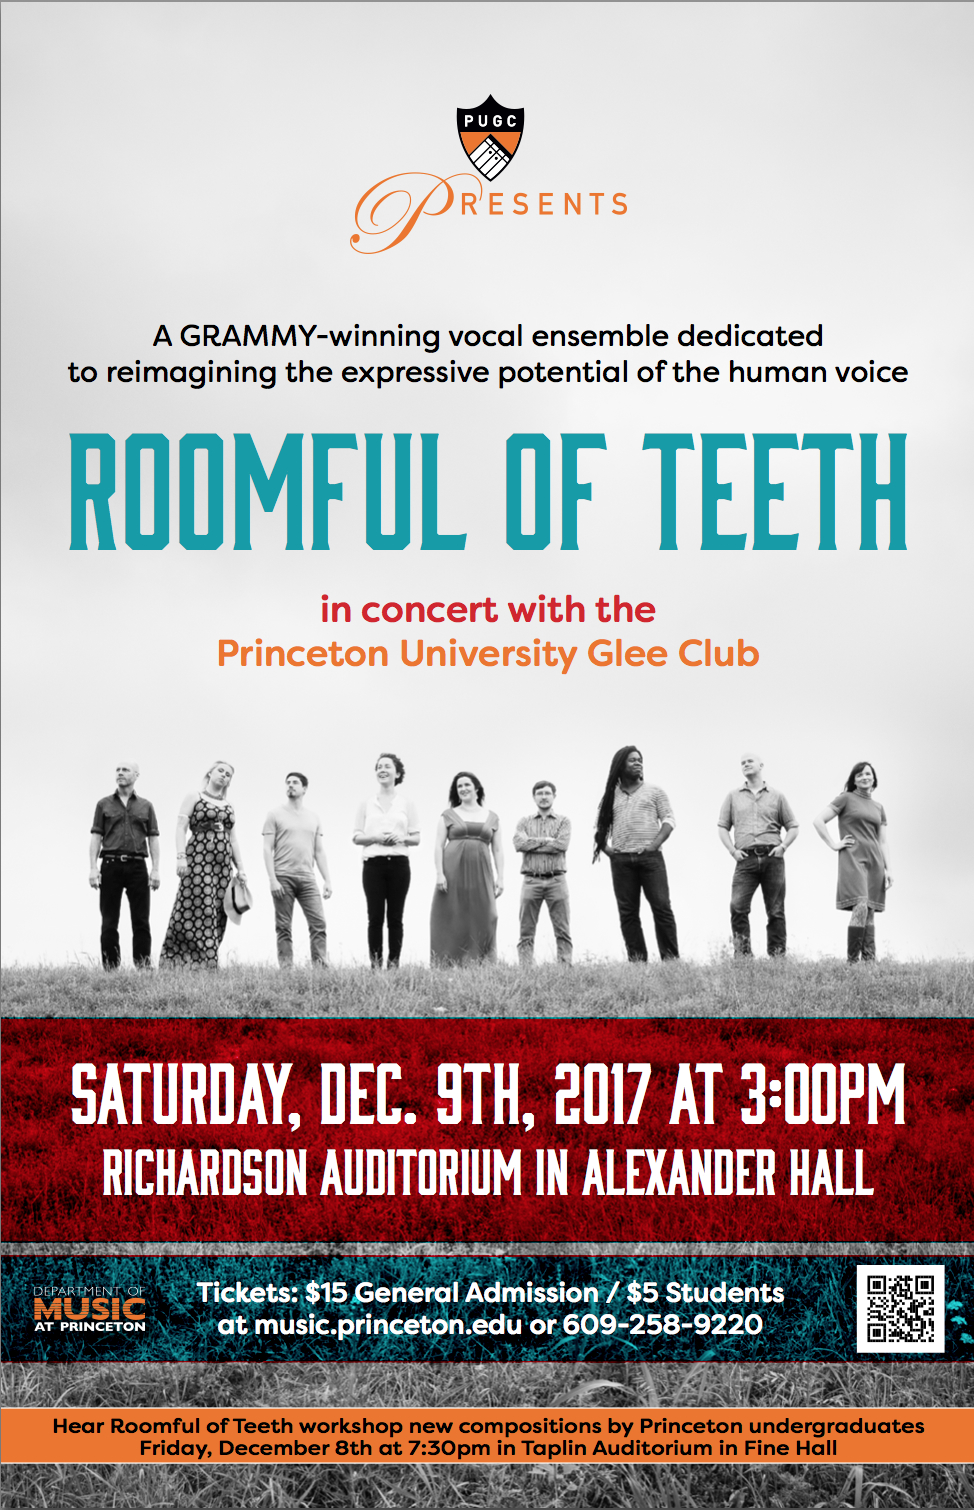 Glee Club Presents: Roomful of Teeth — Princeton University Glee Club